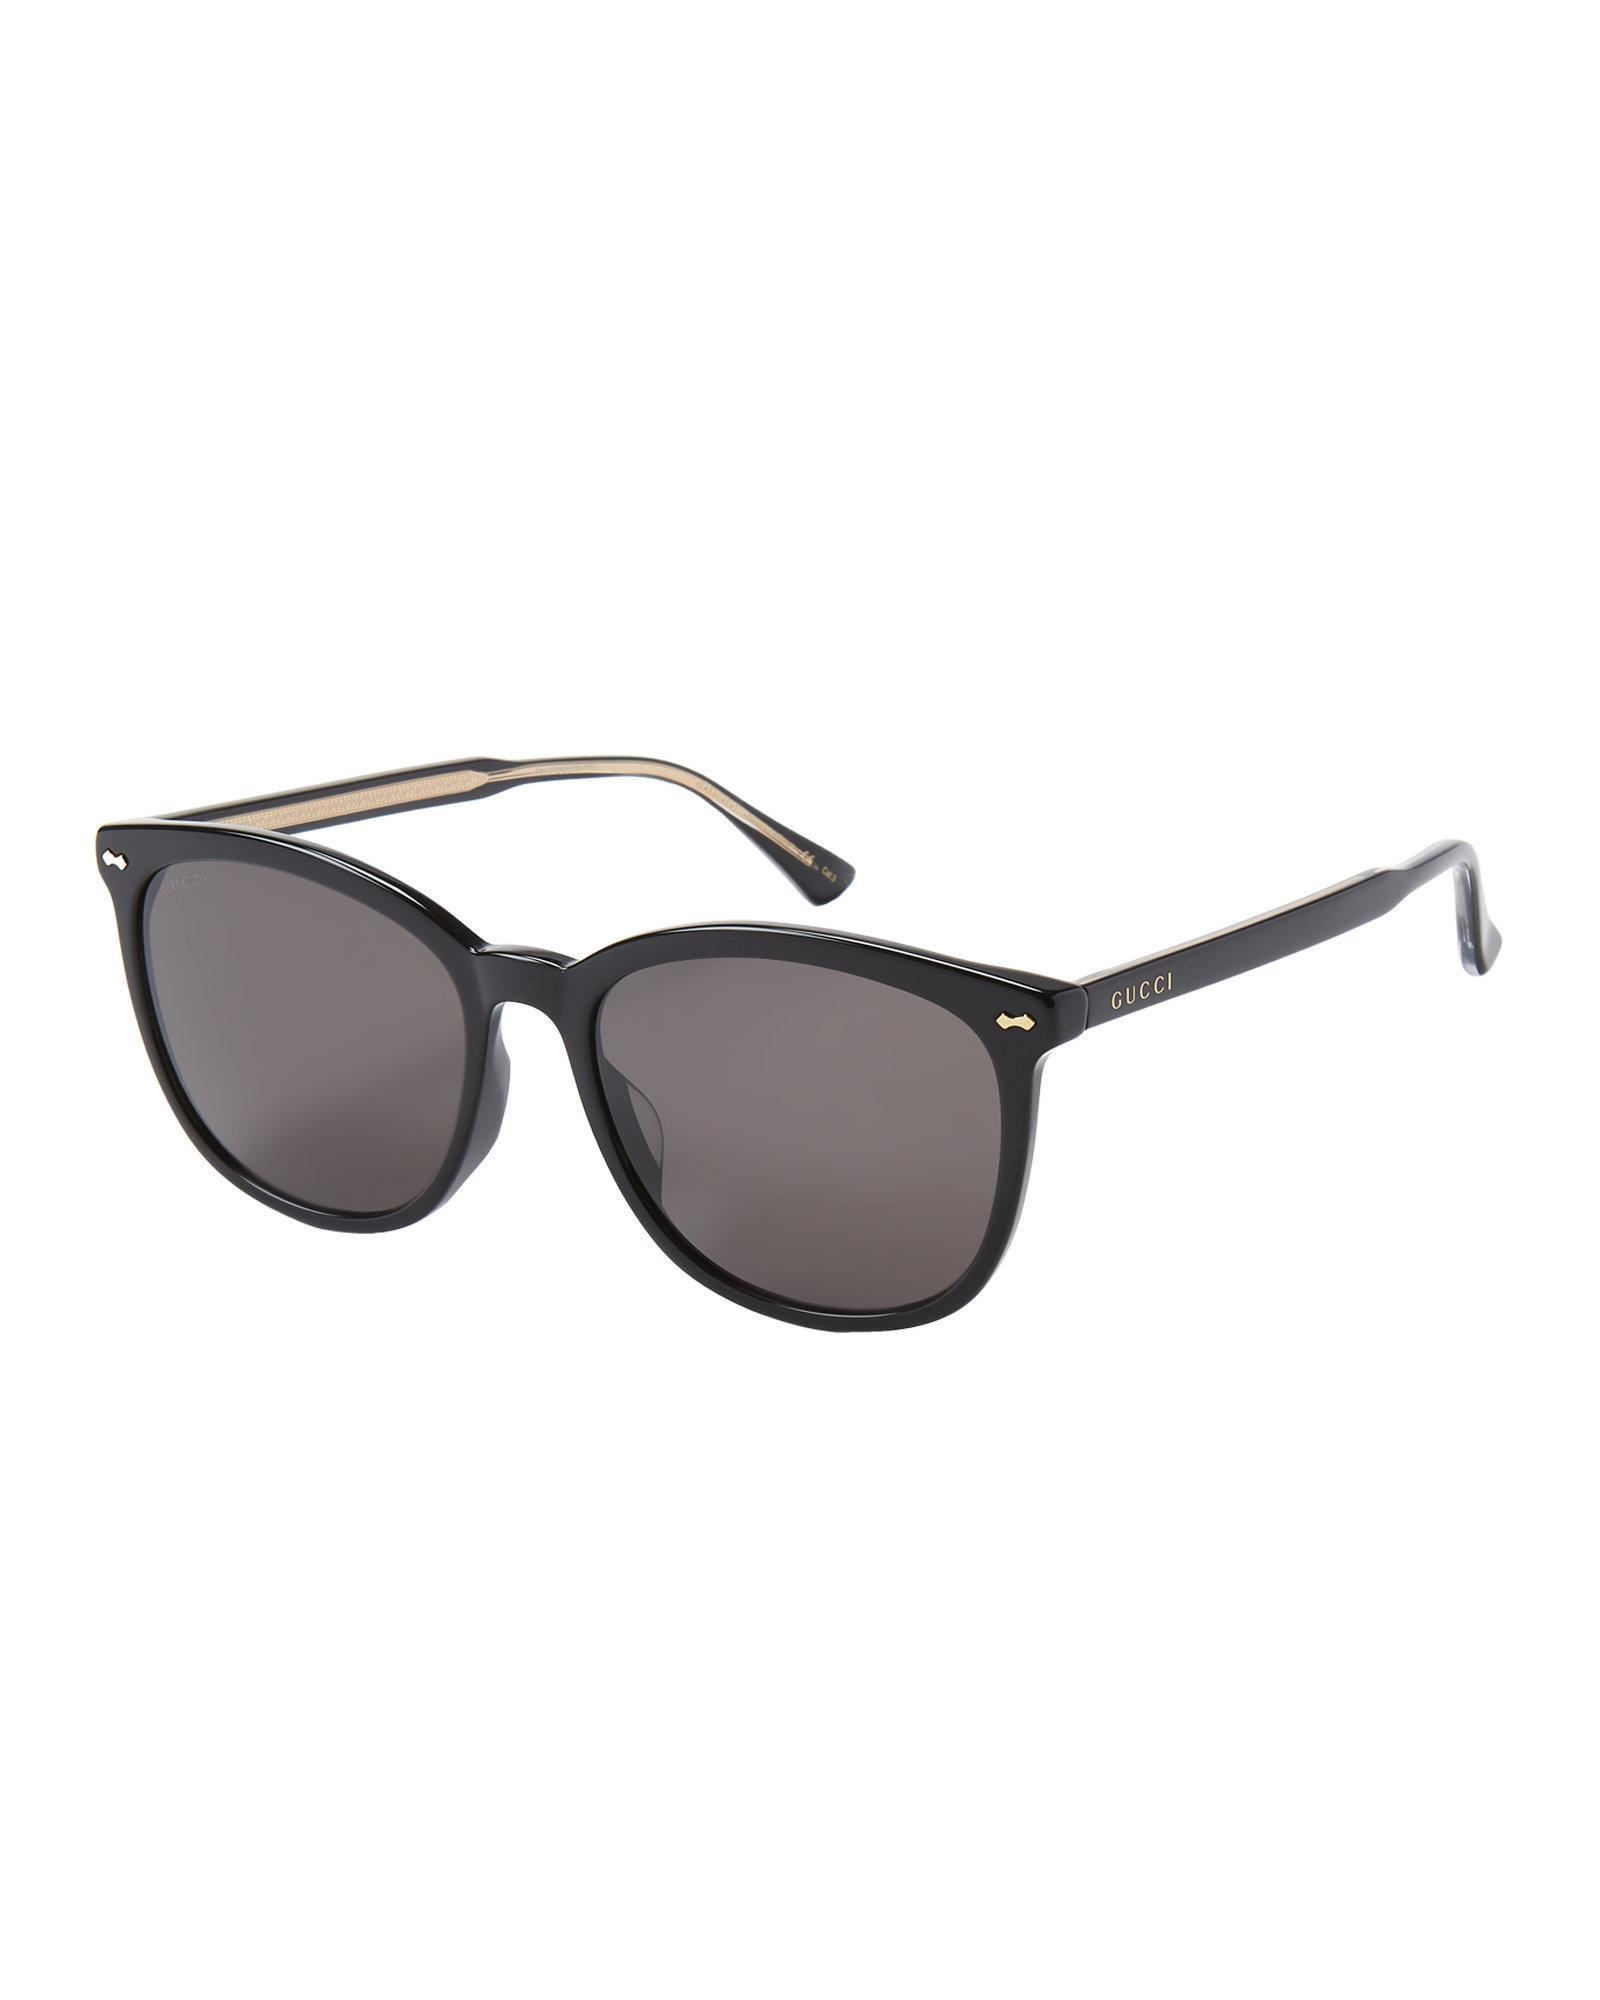 85add78a75 Gucci GG0196SK Black Round Sunglasses in Black - Lyst